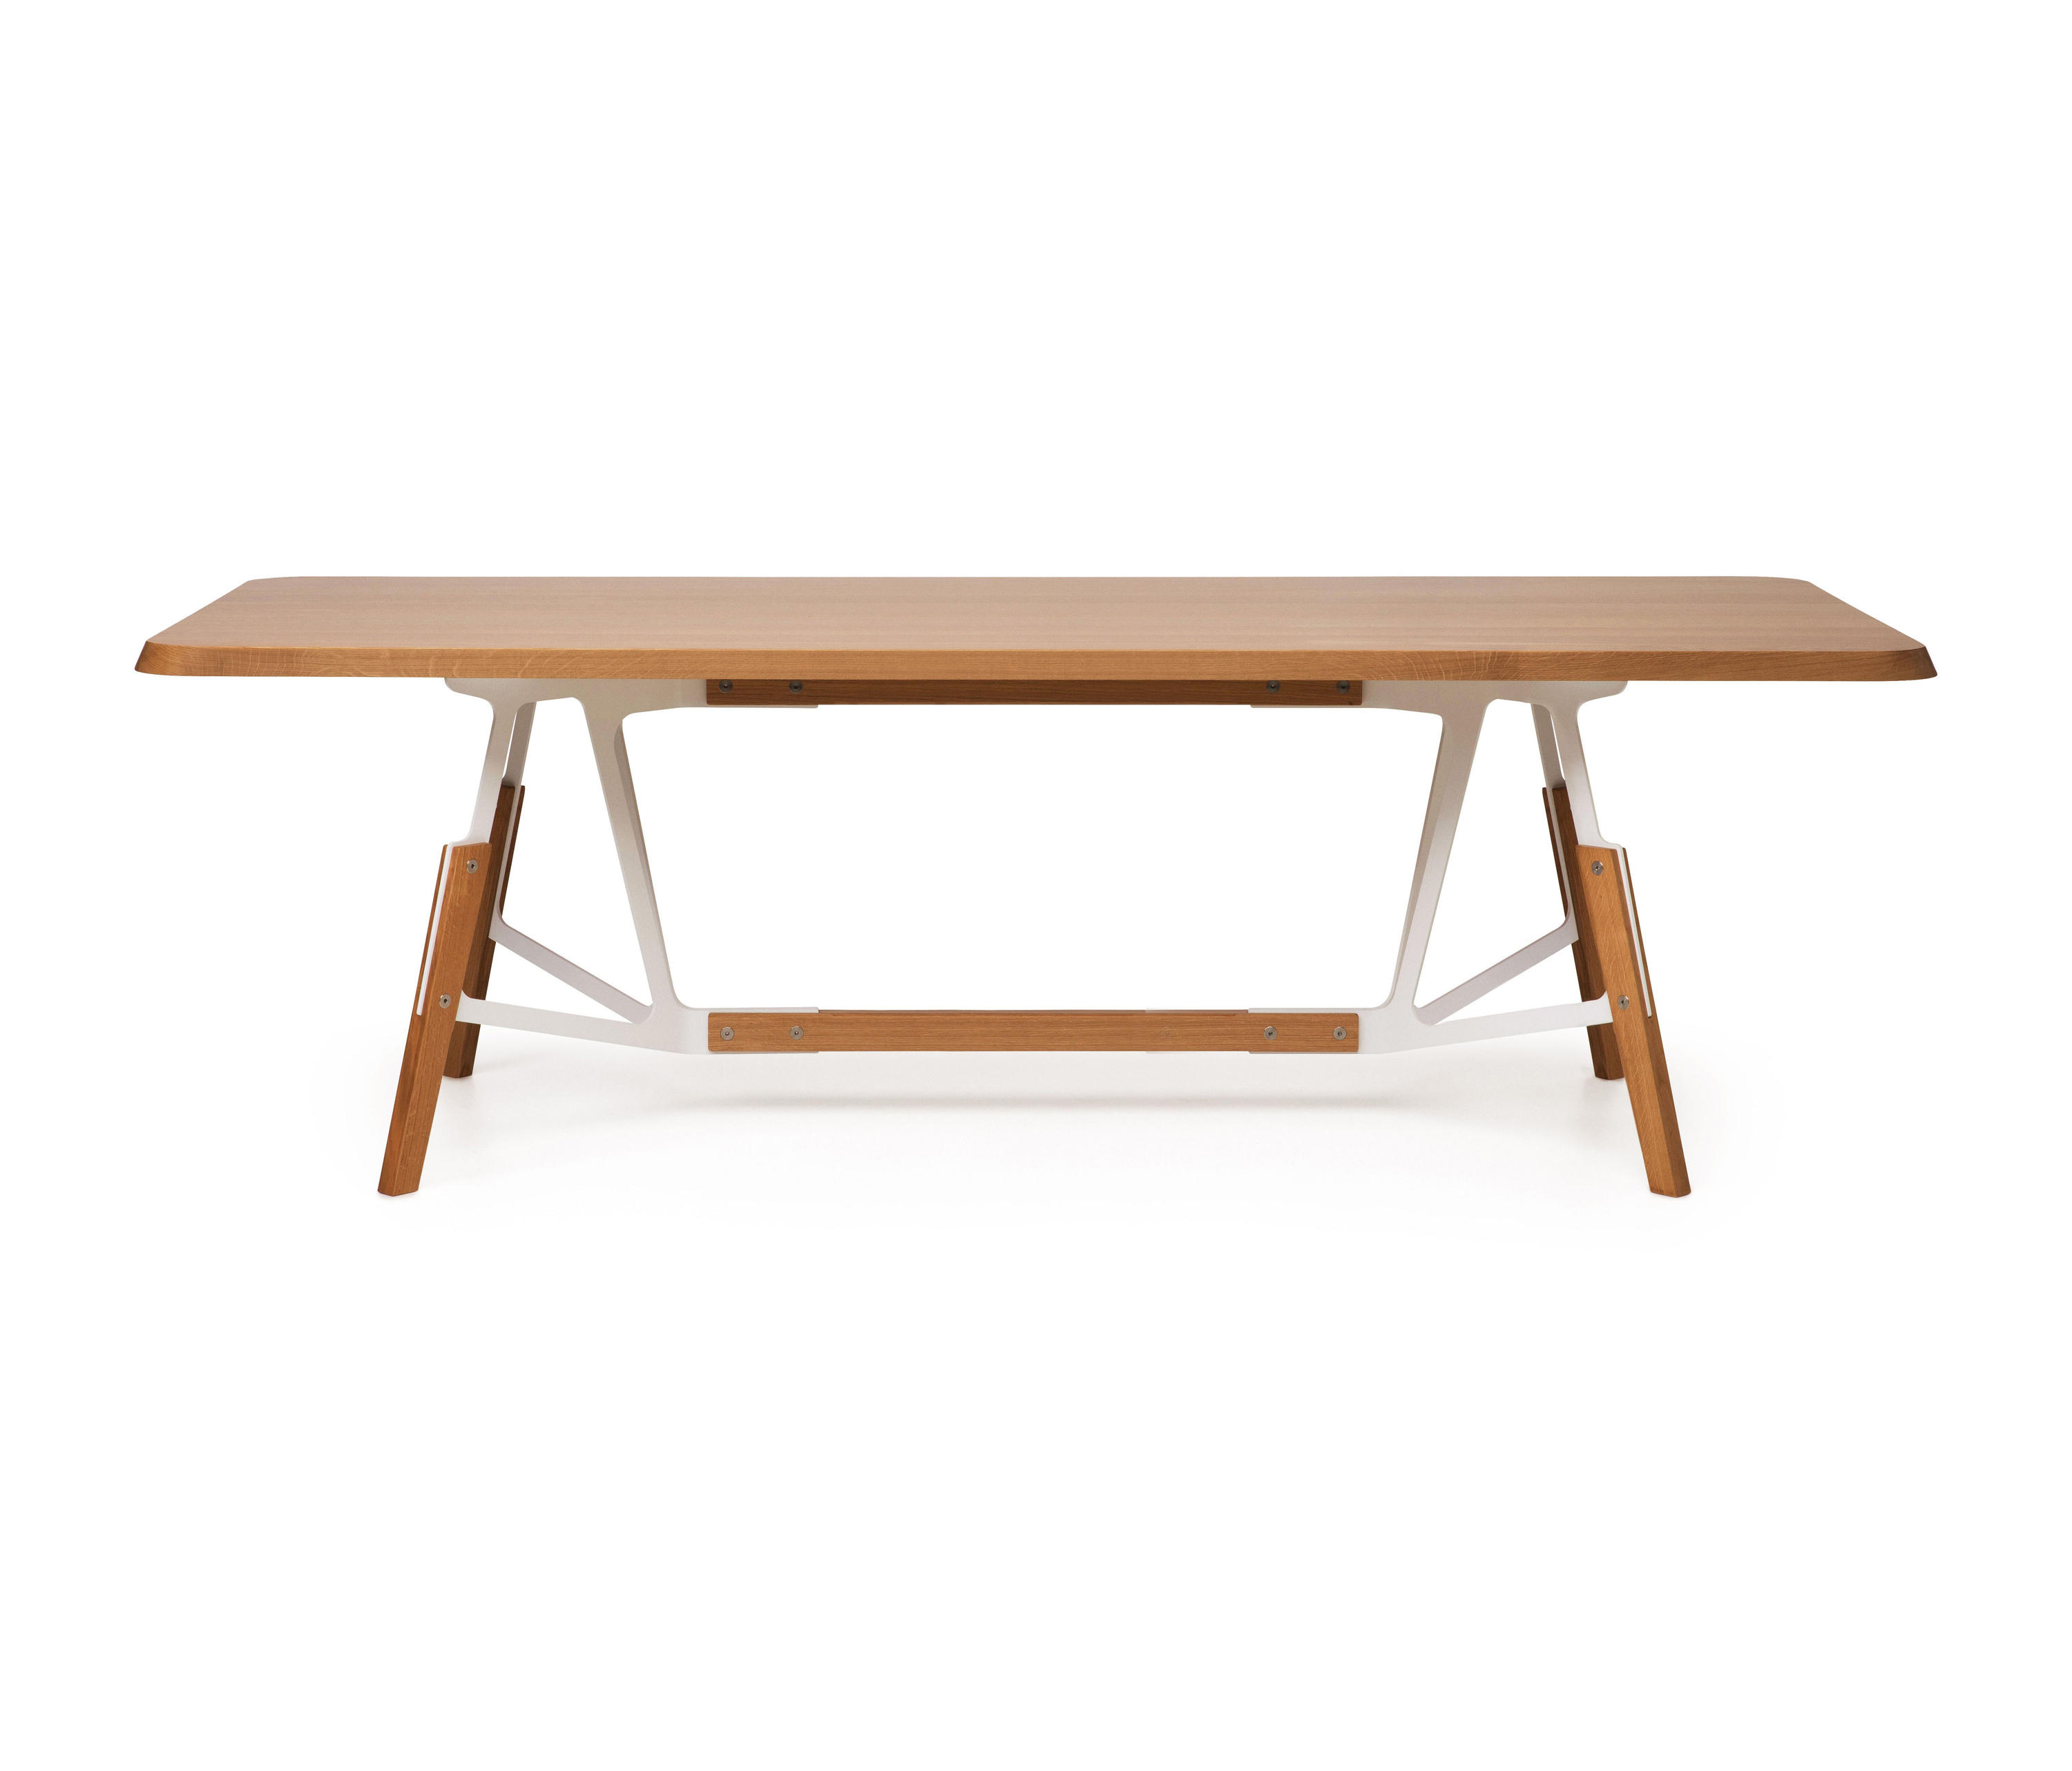 Stammtisch Rectangular Table By Quodes | Dining Tables ...